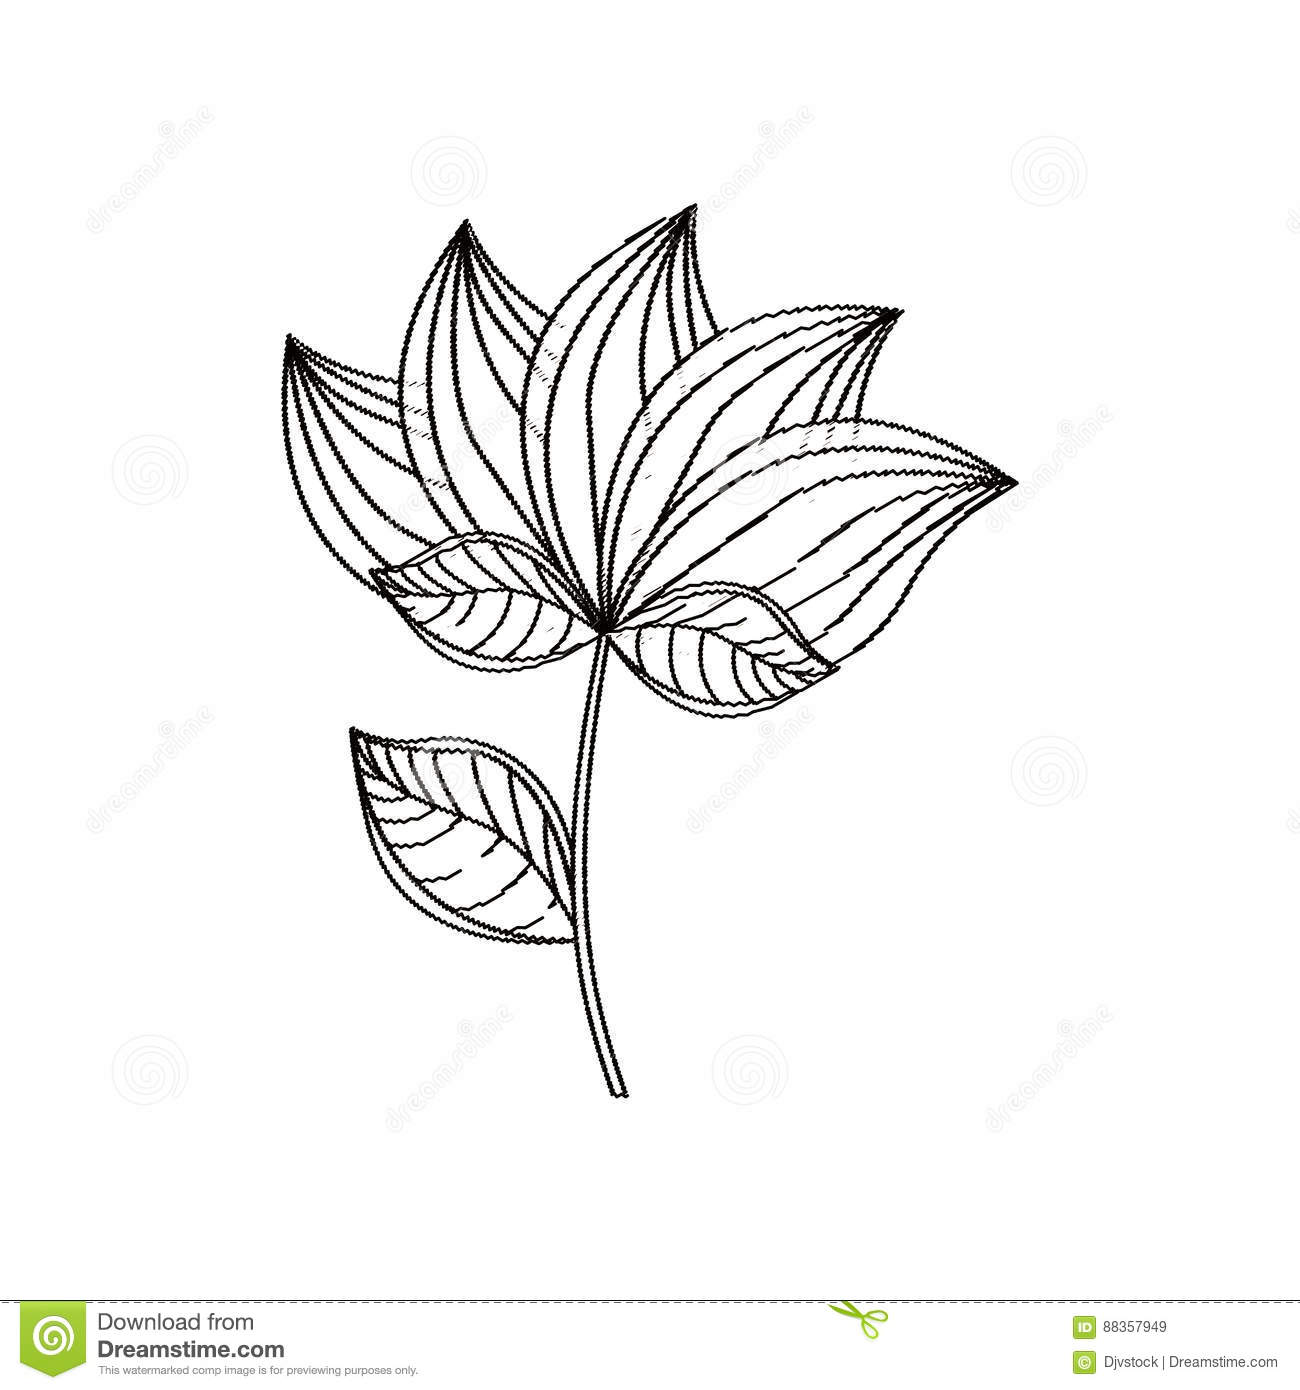 Lotus flower decoration sketch stock illustration illustration of lotus flower decoration sketch izmirmasajfo